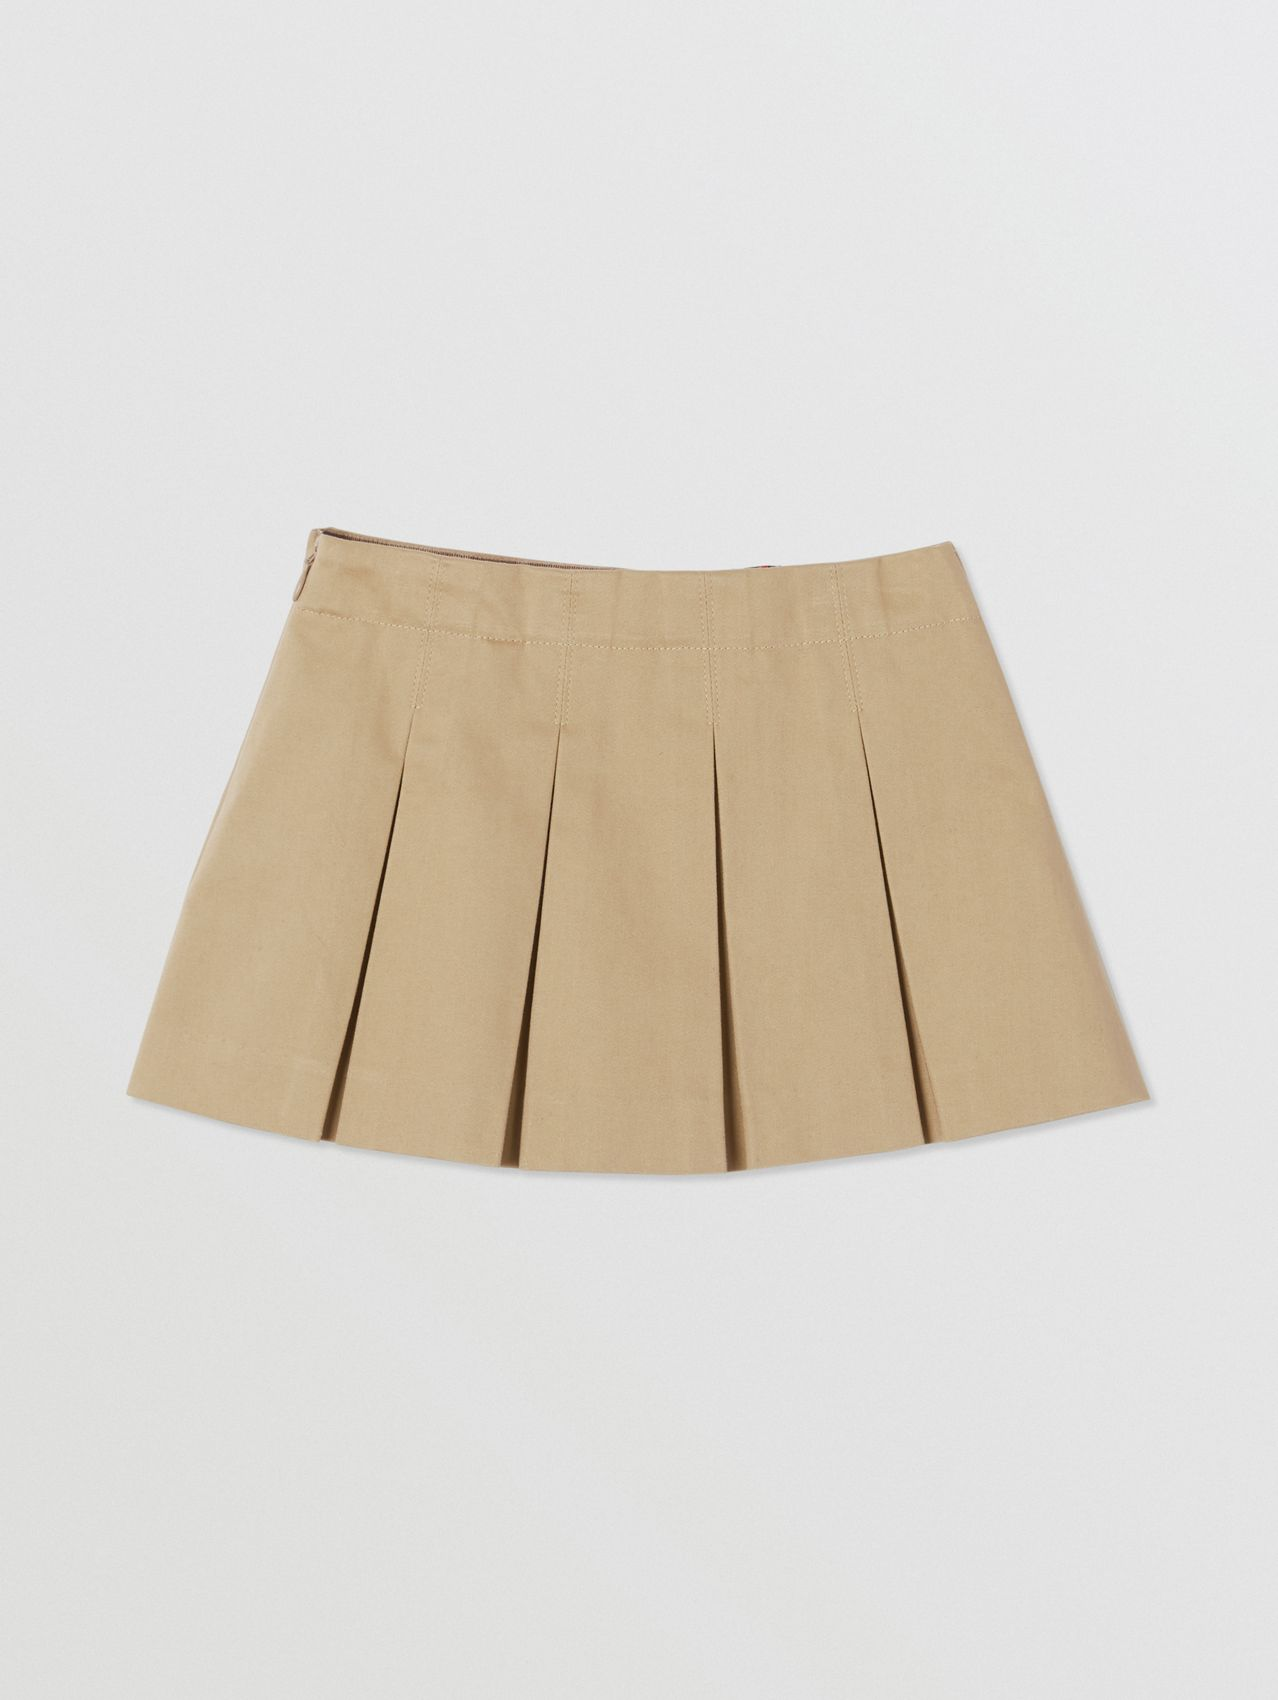 Monogram Stripe Print Box-pleated Cotton Skirt in Honey